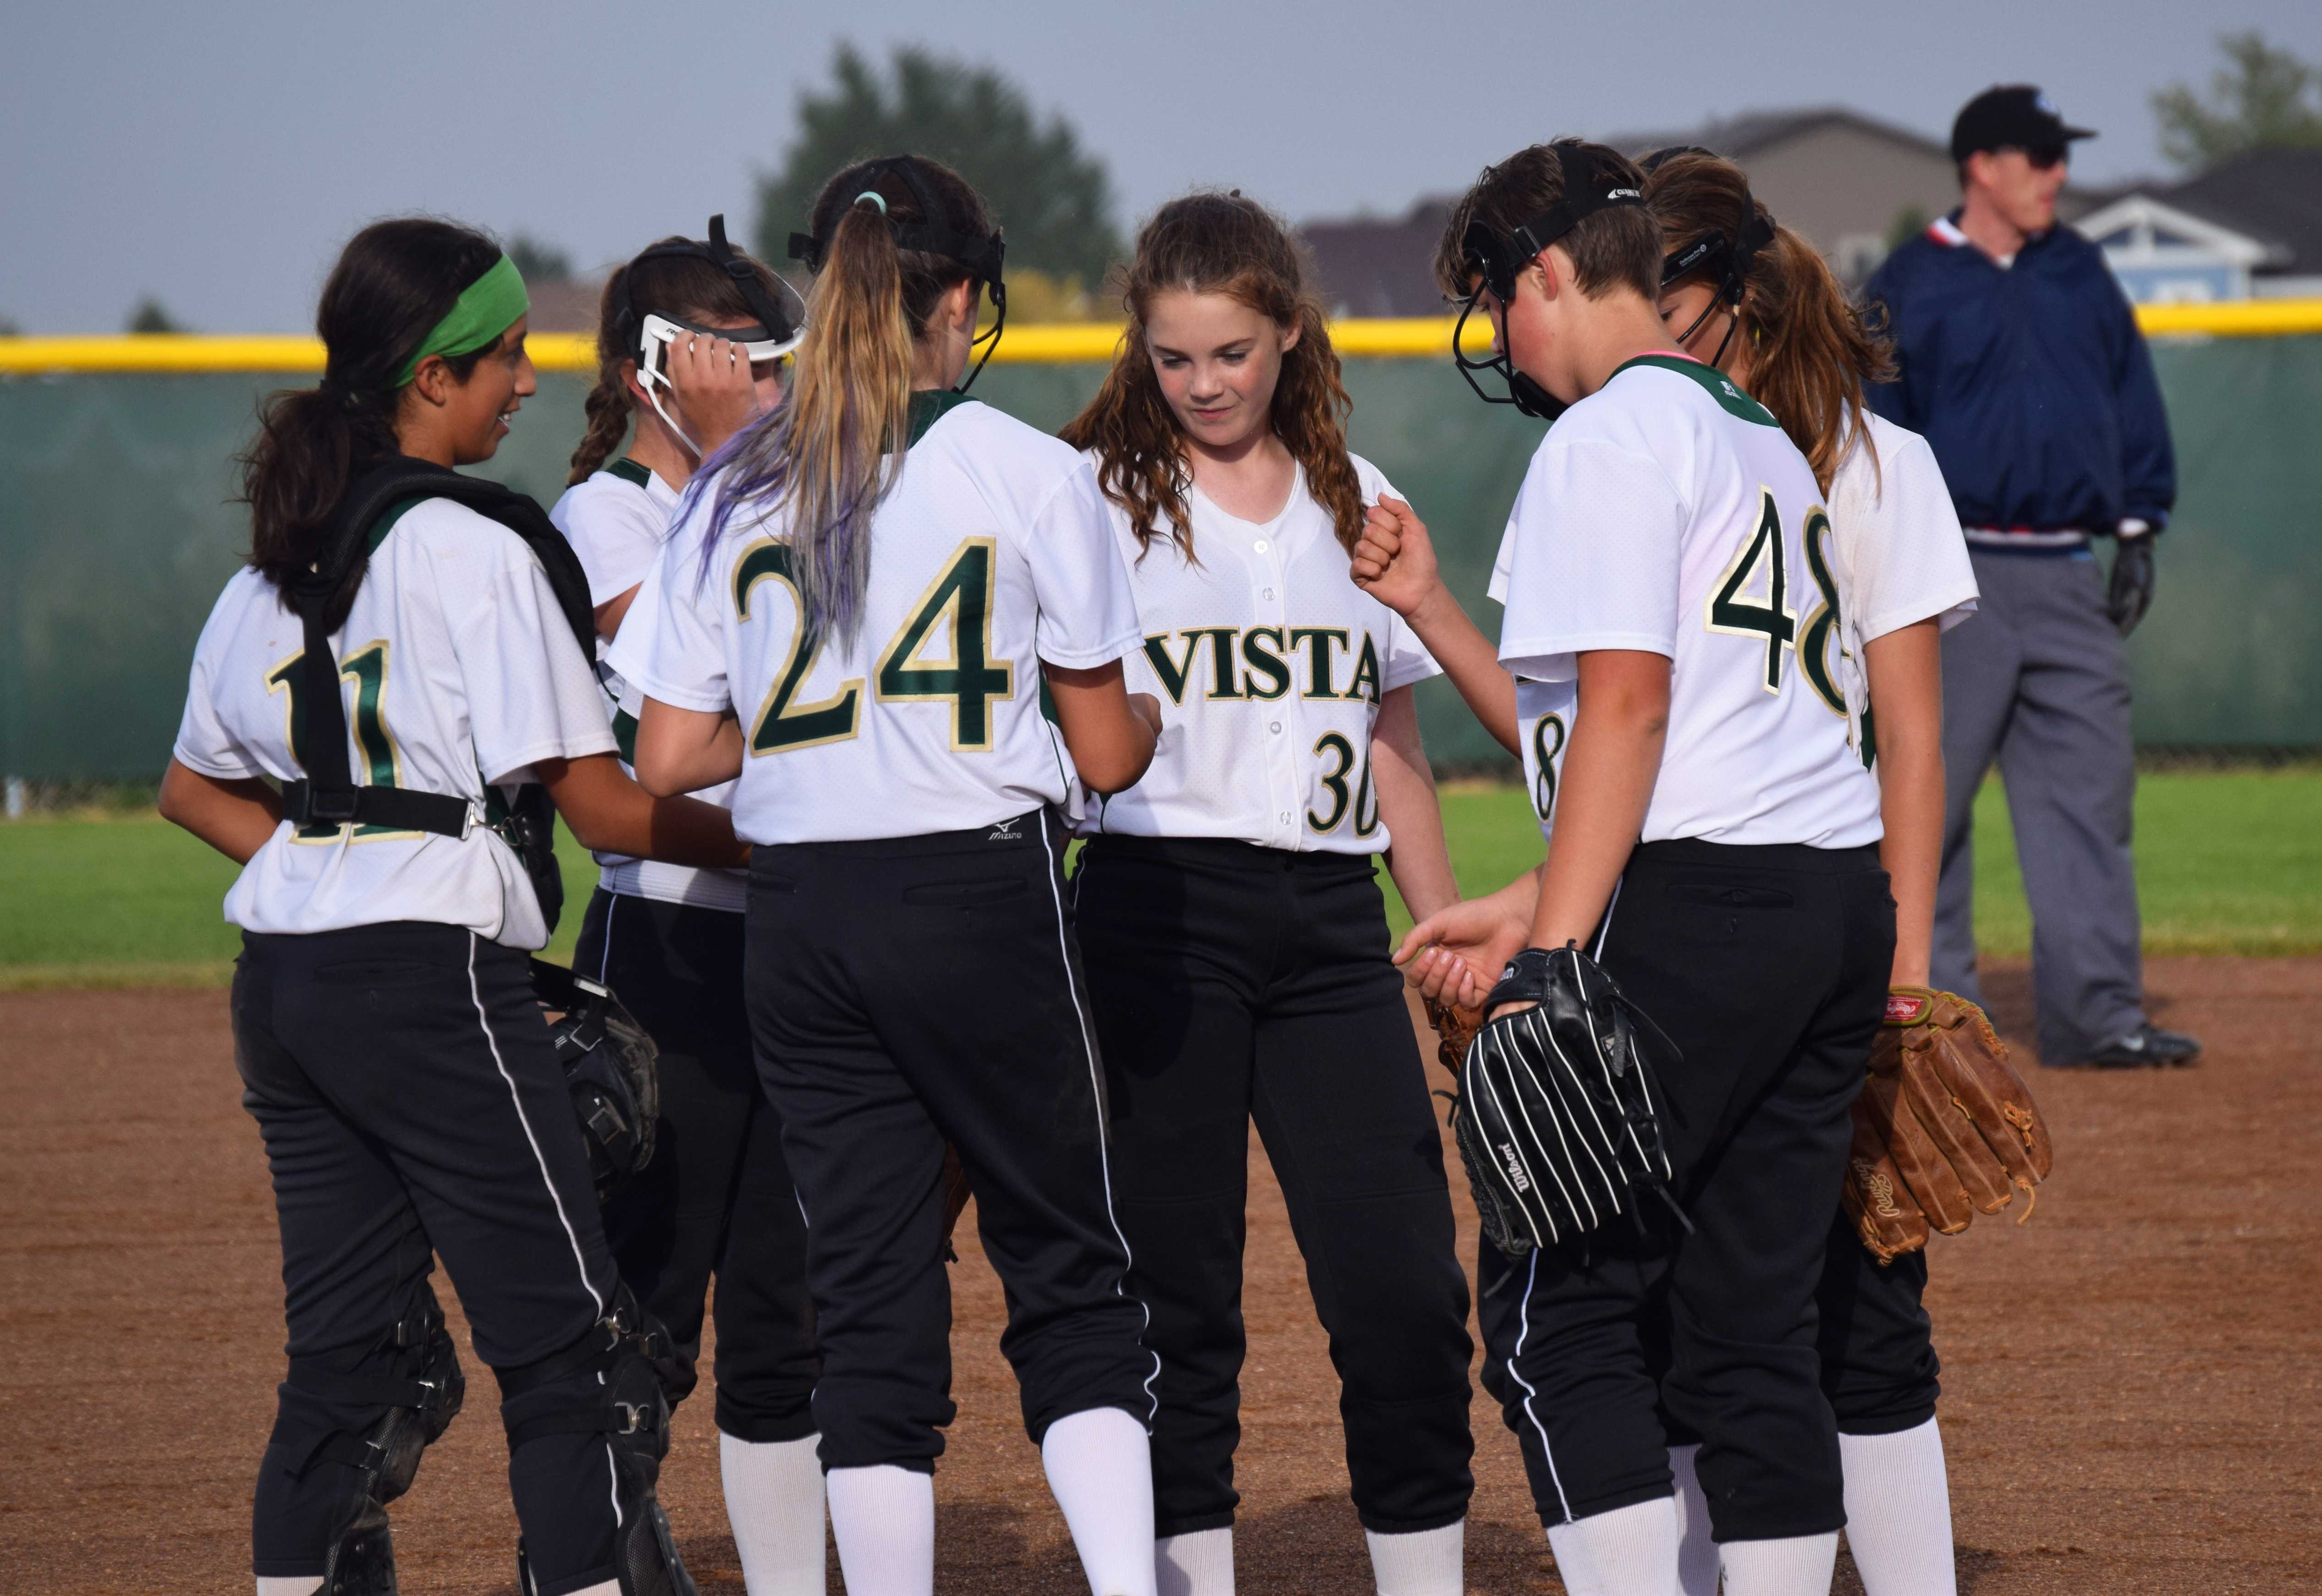 PHOTOS: JV Softball vs. Legend